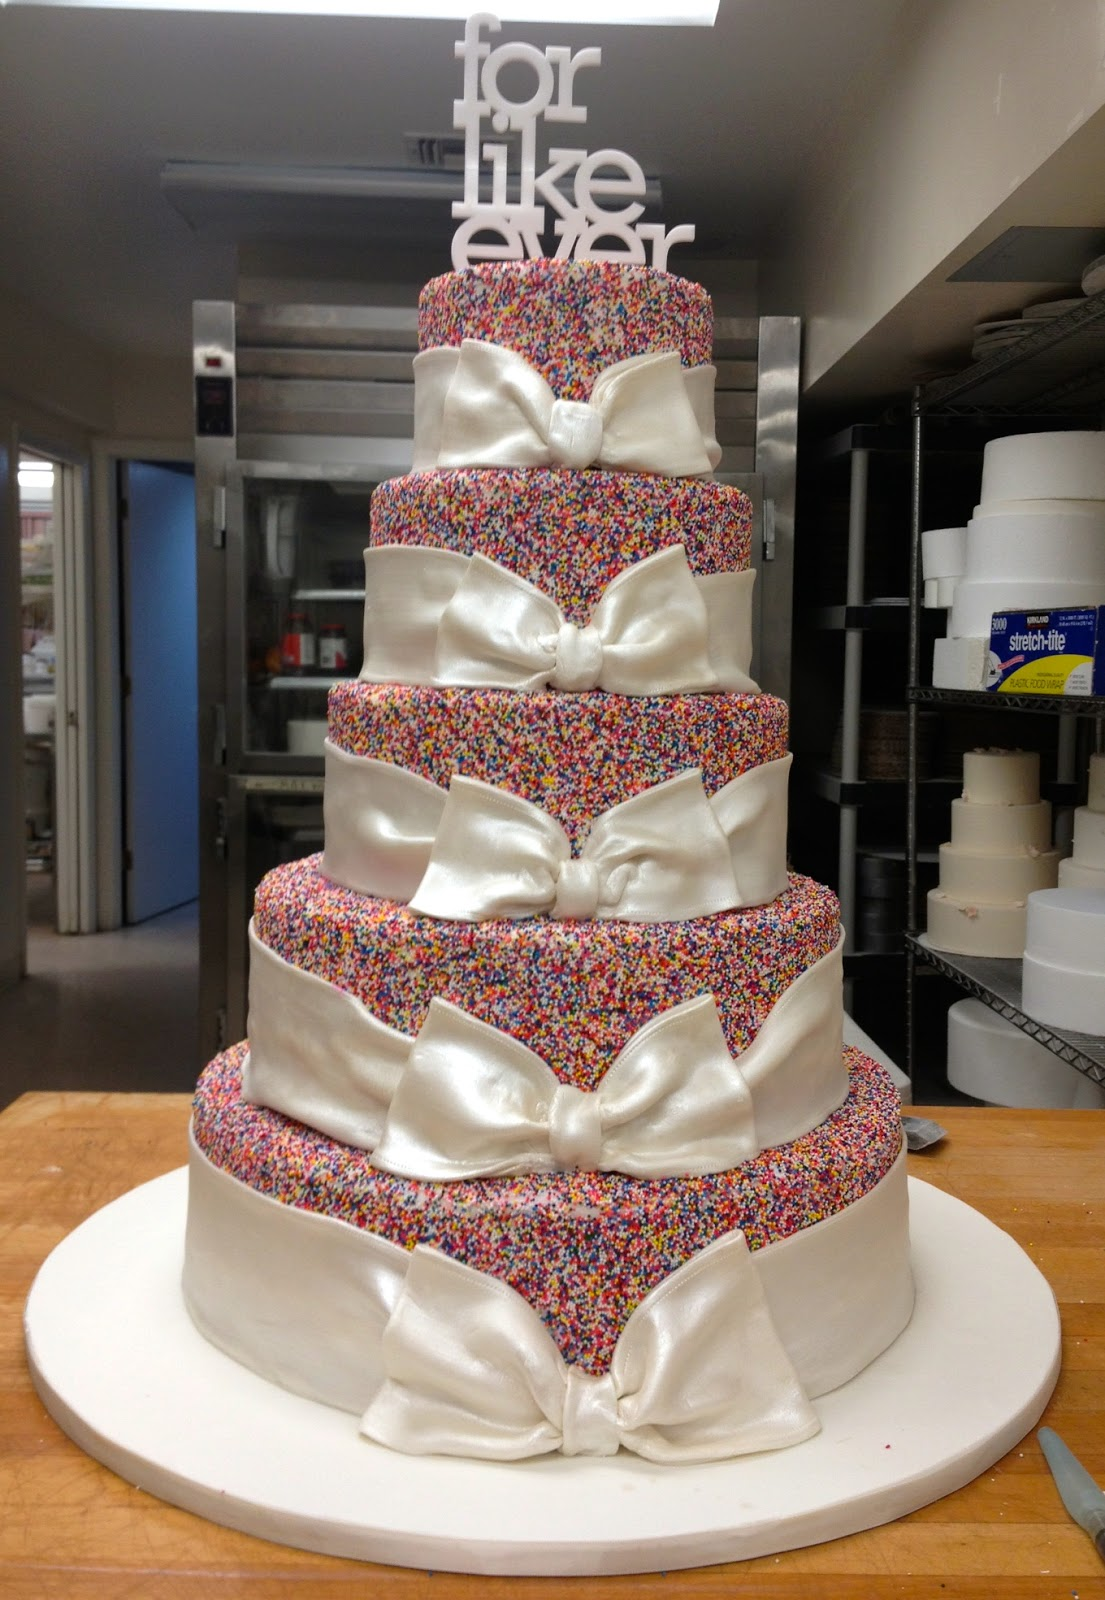 For The Love Of Cake By Garry Ana Parzych Making A Playful